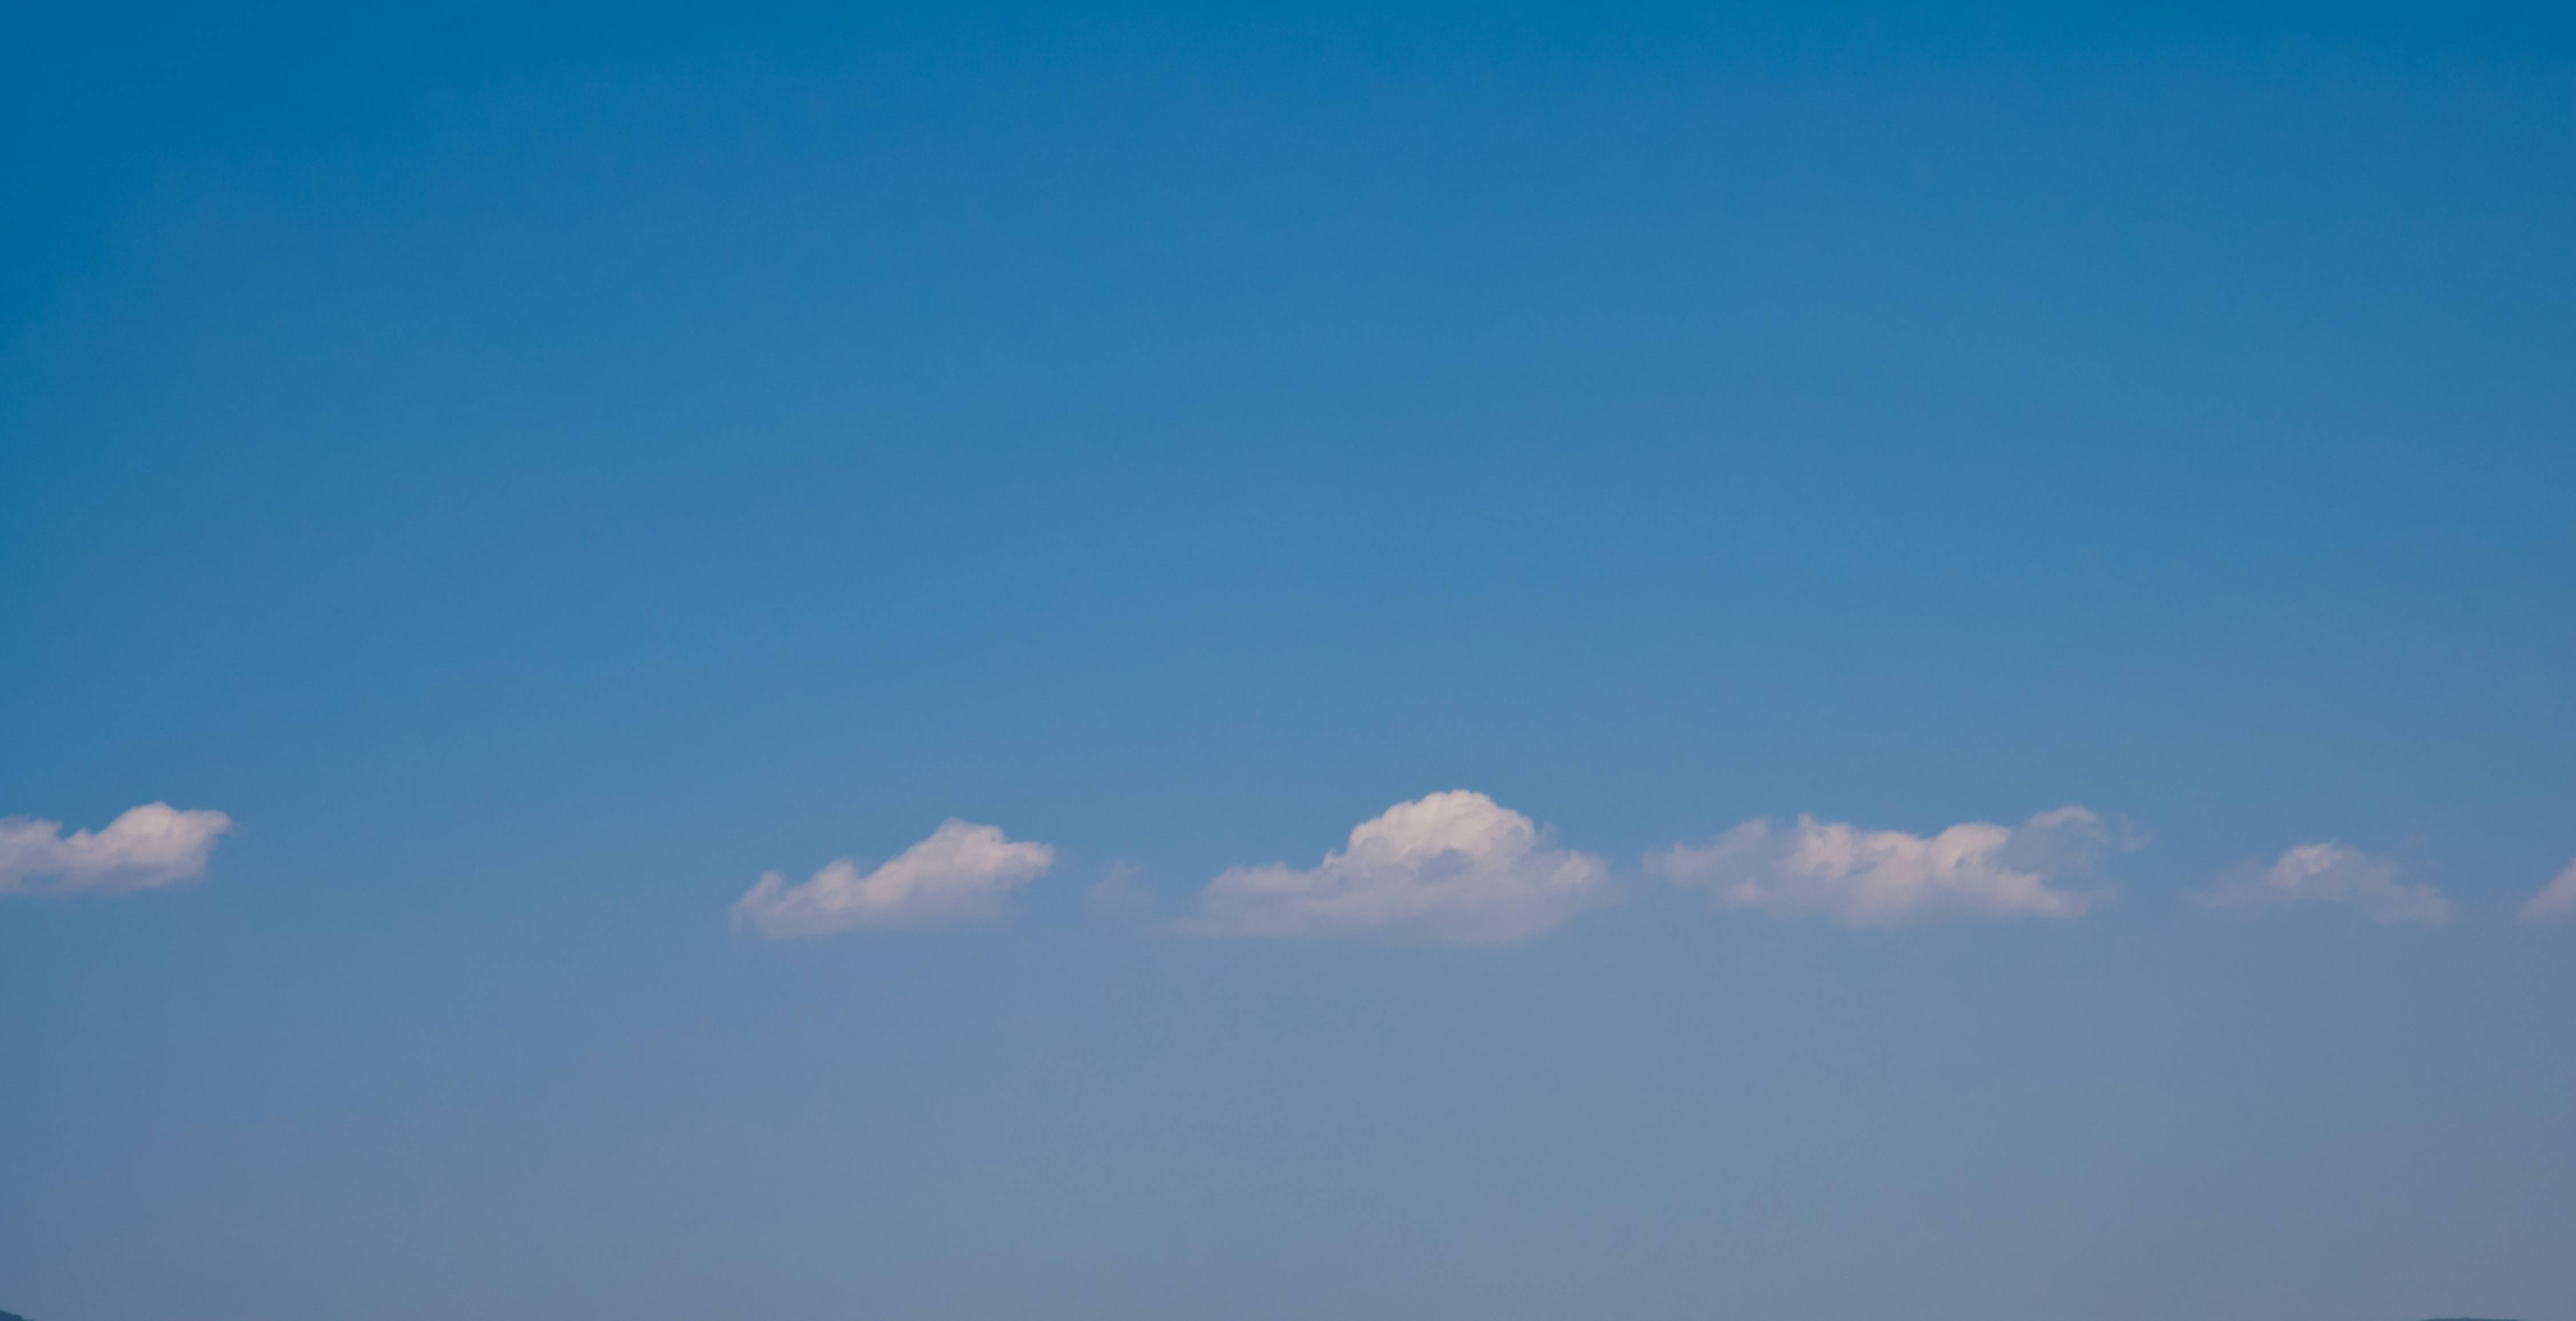 Blue sky and a cloudy line background